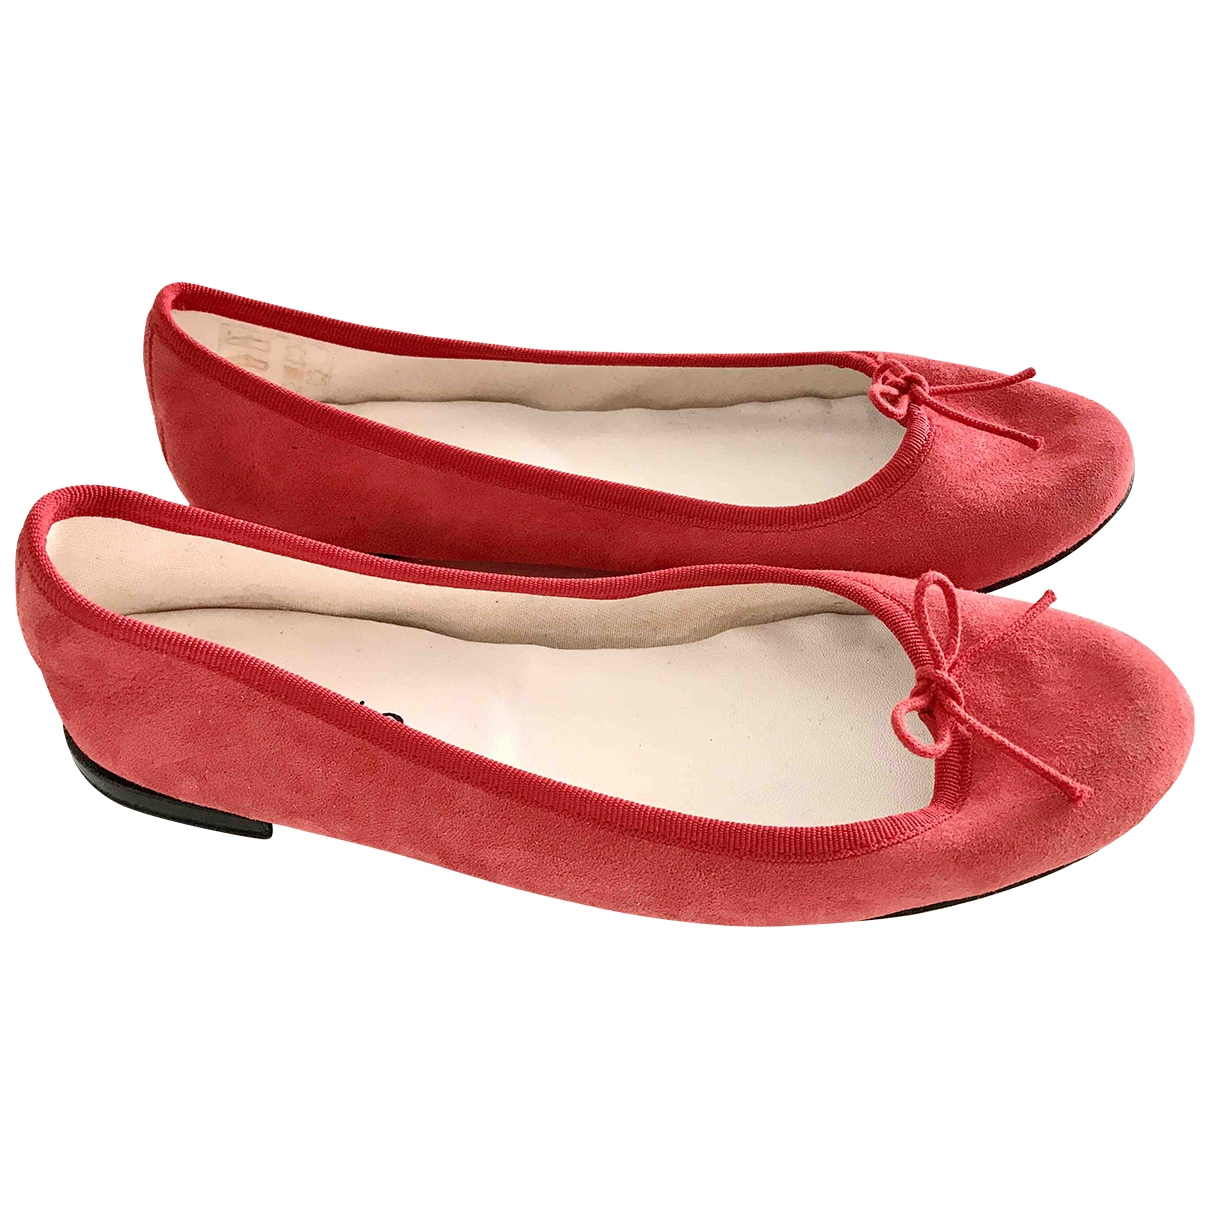 Repetto \N Red Suede Ballet flats for Women 39.5 EU